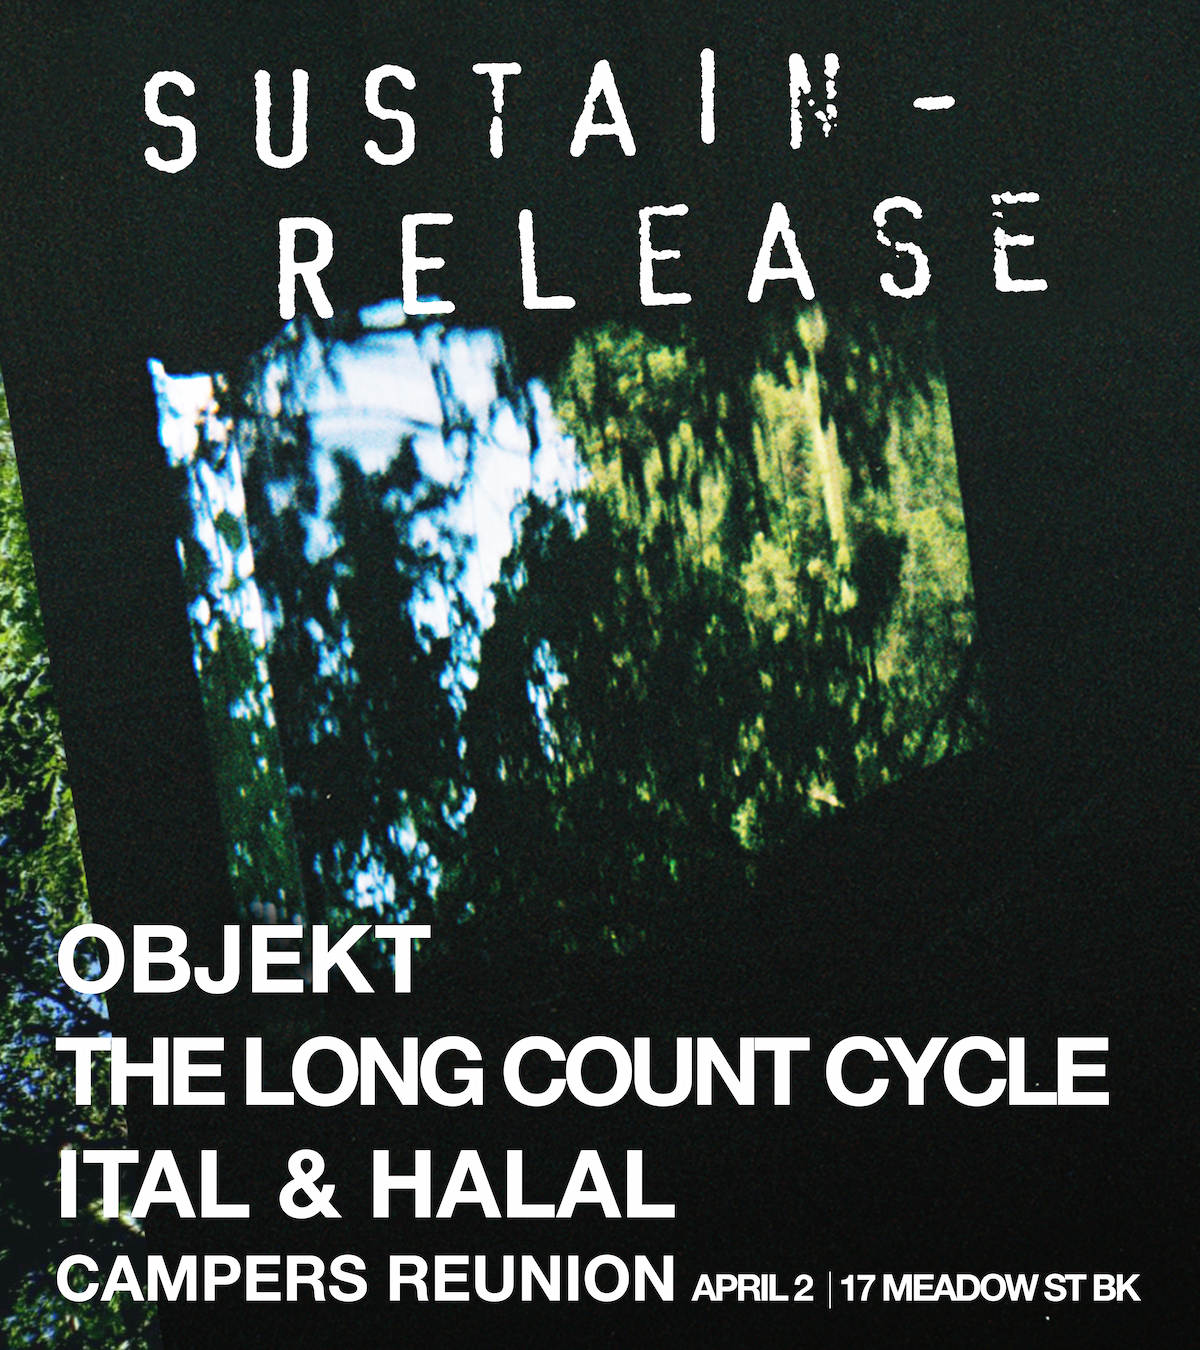 Sustain-Release Campers Reunion: Objekt, The Long Count Cycle, Ital & Halal  April 2016